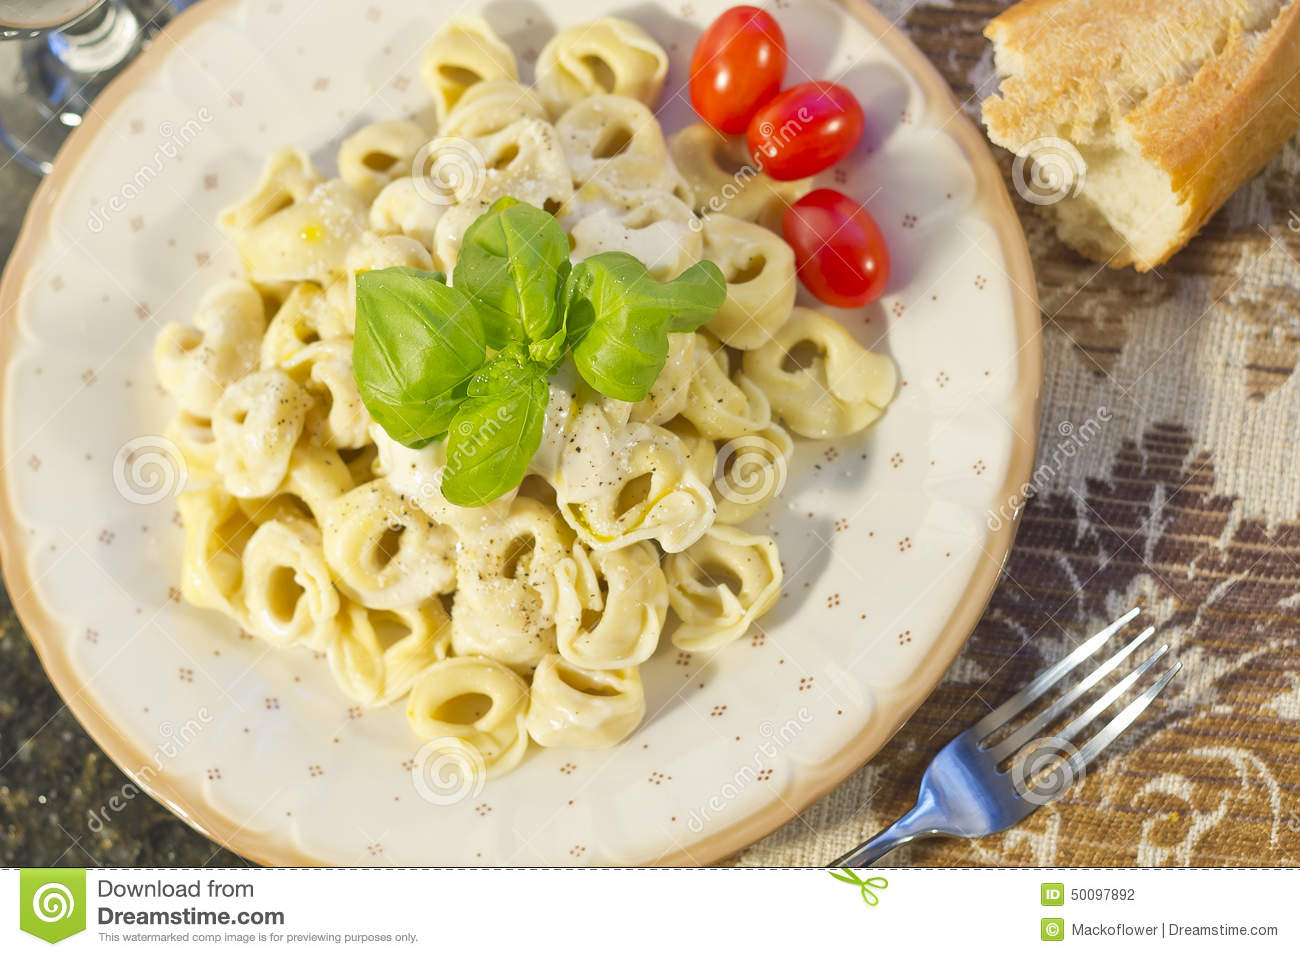 how to make chicken tortellini with alfredo sauce